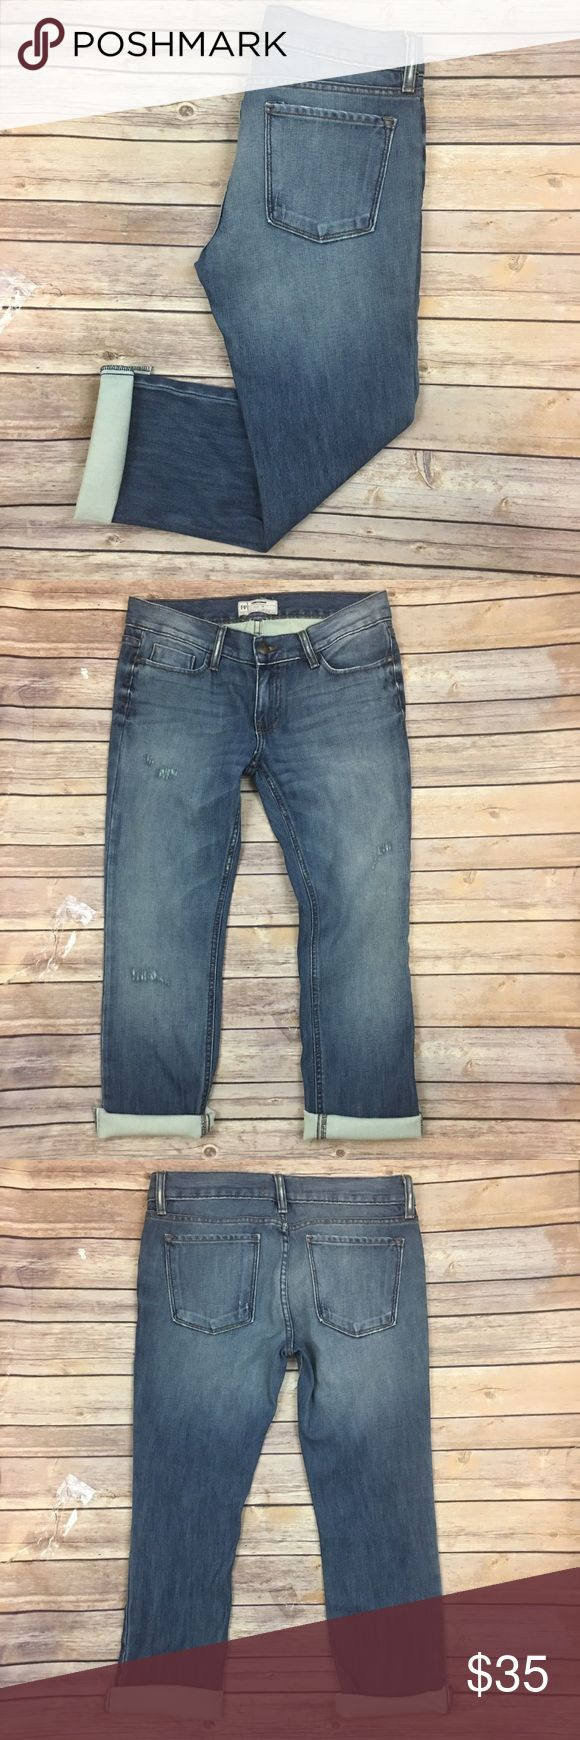 """Free People Jeans Boyfriend Distressed Rolled Cuff Tag Size - 28 Waist Measured Across - 16"""" Inseam - 26"""" Rise - 8.5"""" The cuffs have been cut and are raw. Always open to reasonable offers. Free People Jeans Boyfriend"""